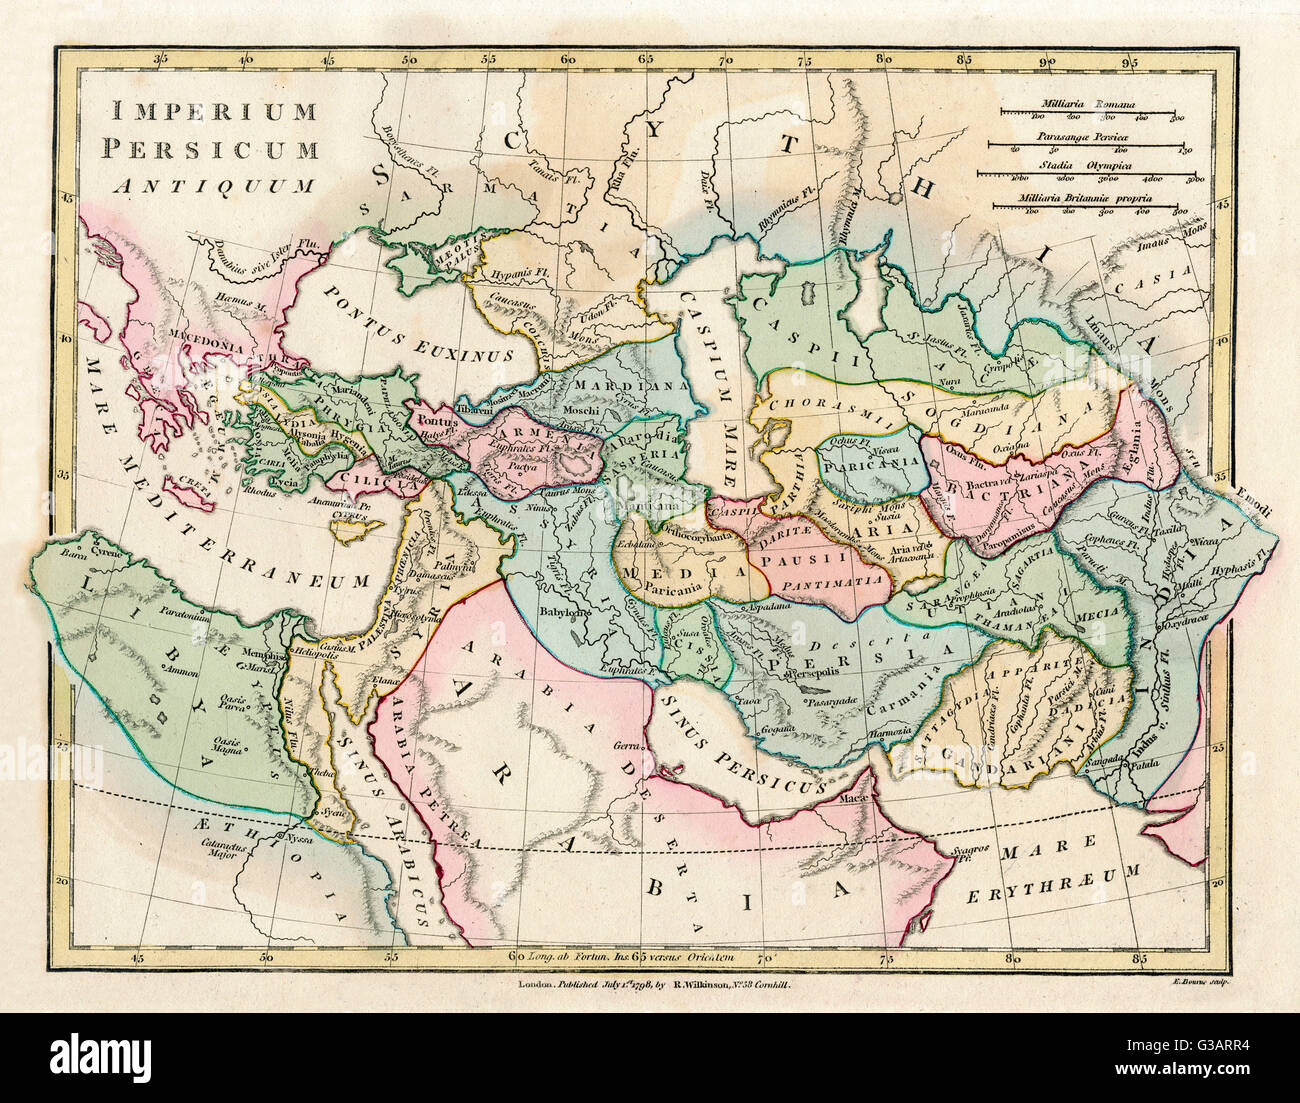 Persian empire stock photos persian empire stock images alamy map of the ancient persian empire encompassing greece to the north west arabia to gumiabroncs Choice Image